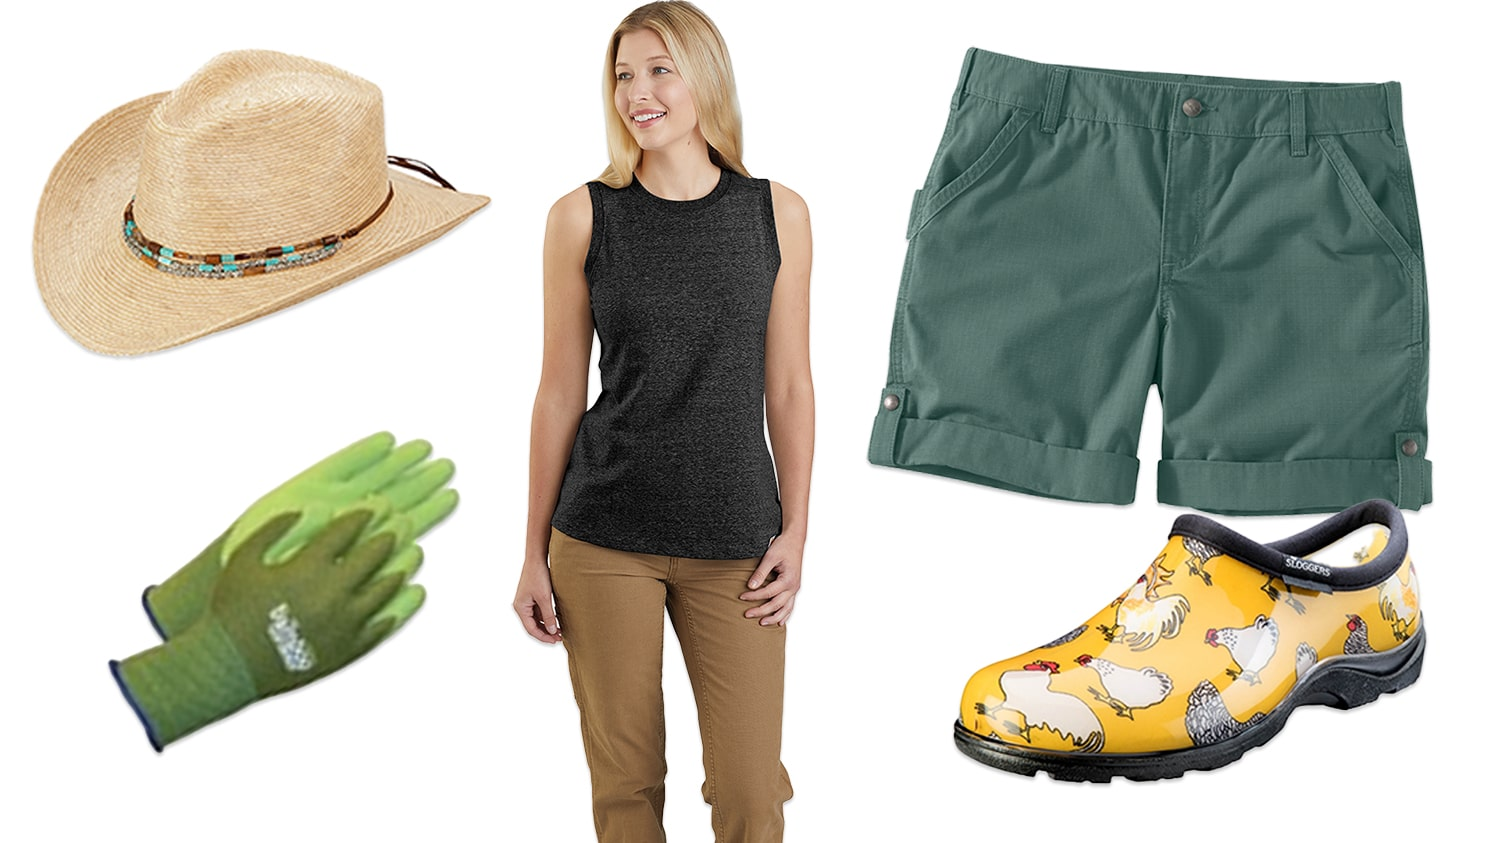 Dressing for the Summer - Working in the Garden